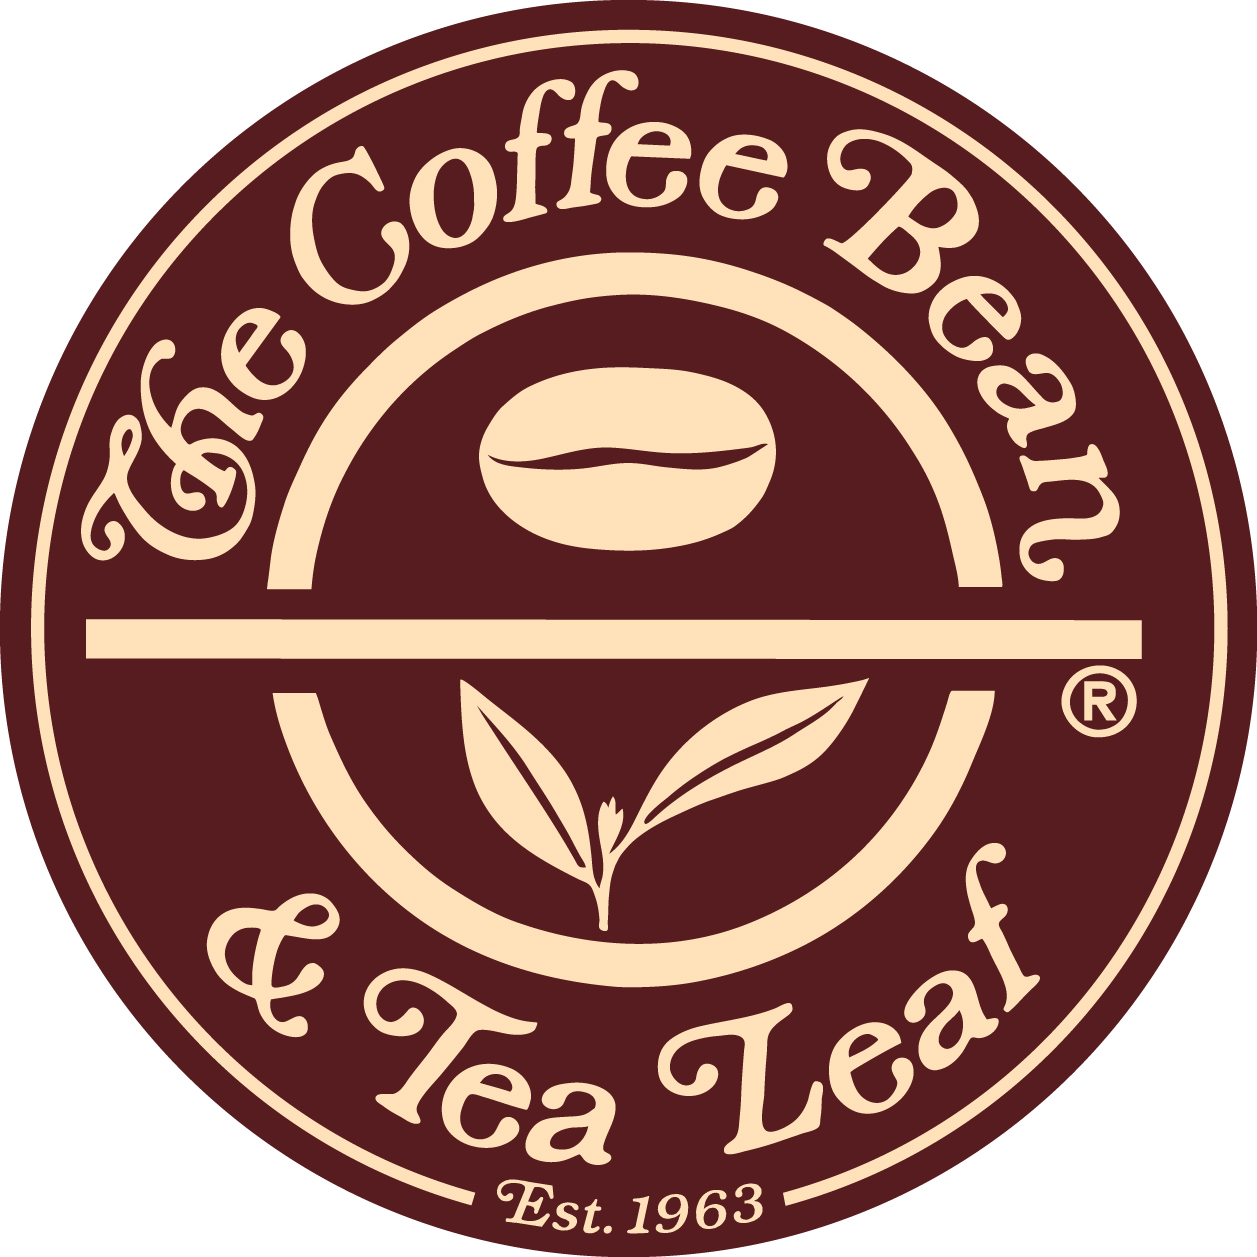 The-coffee-bean-and-tea-leaf-logo